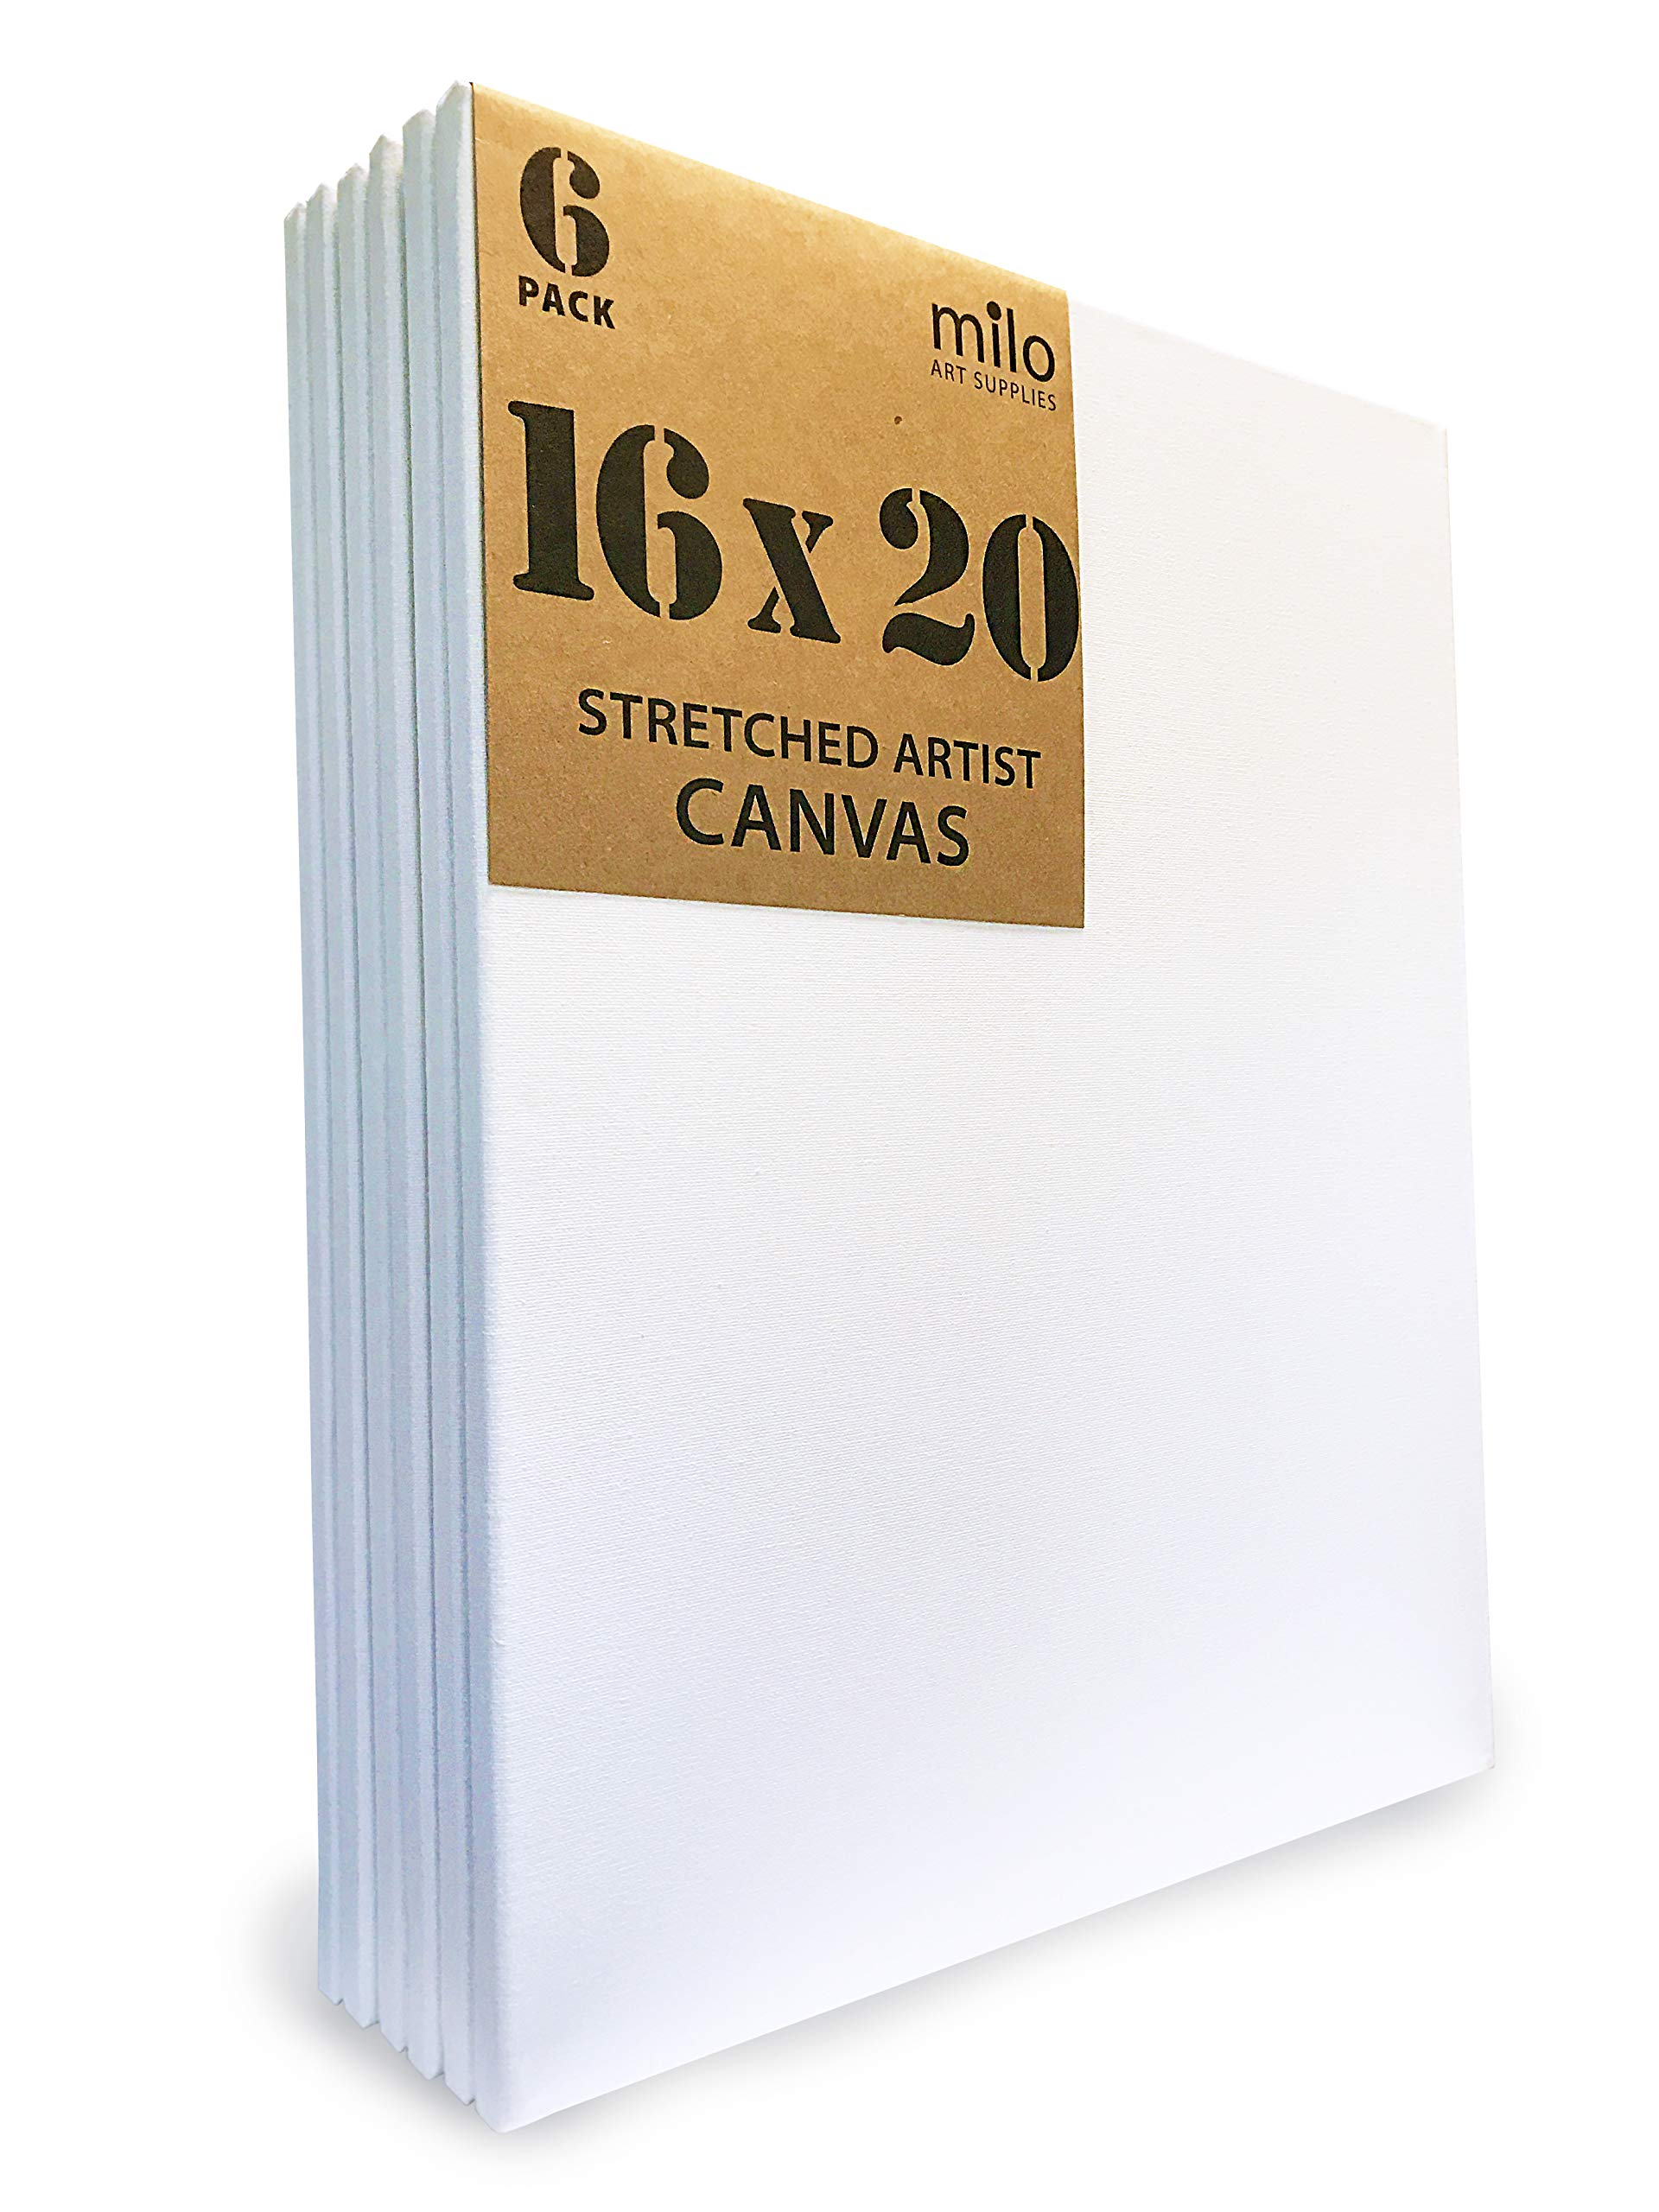 MILO | 16 x 20'' Pre Stretched Artist Canvas Value Pack of 6 | Primed Cotton Canvas for Painting | Gallery Wrapped Back Stapled by milo